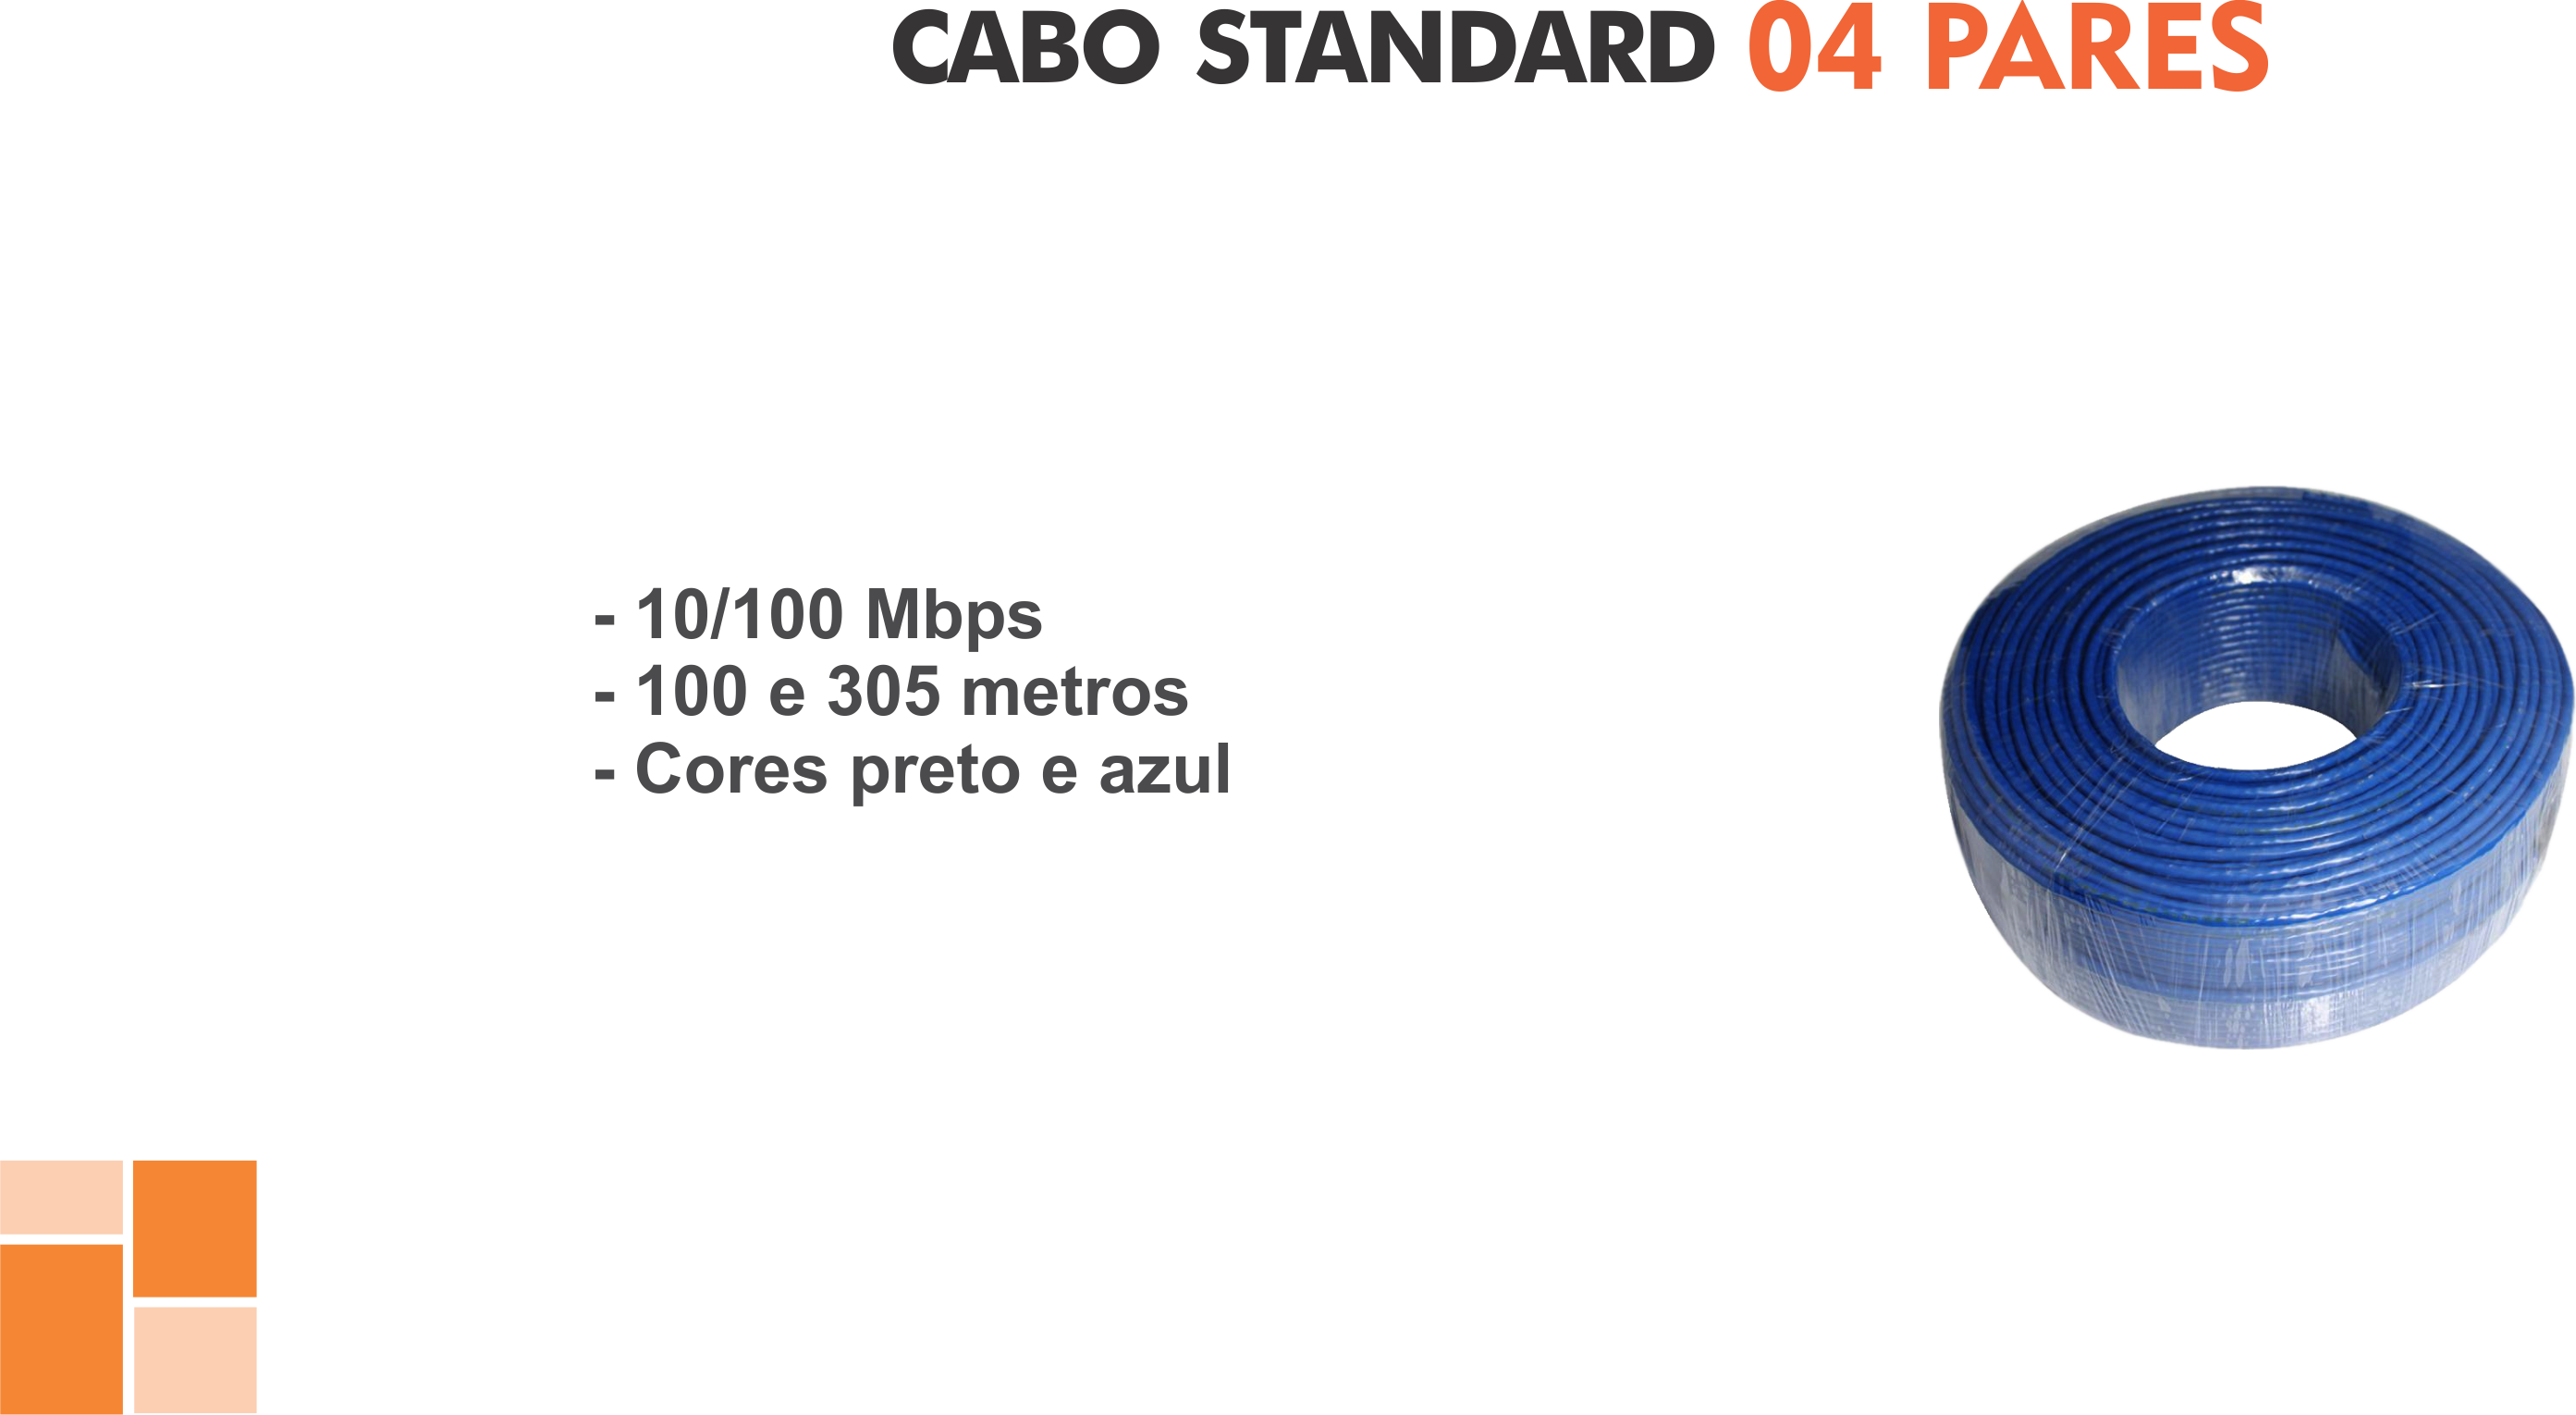 cabo-standard-04-pares.png